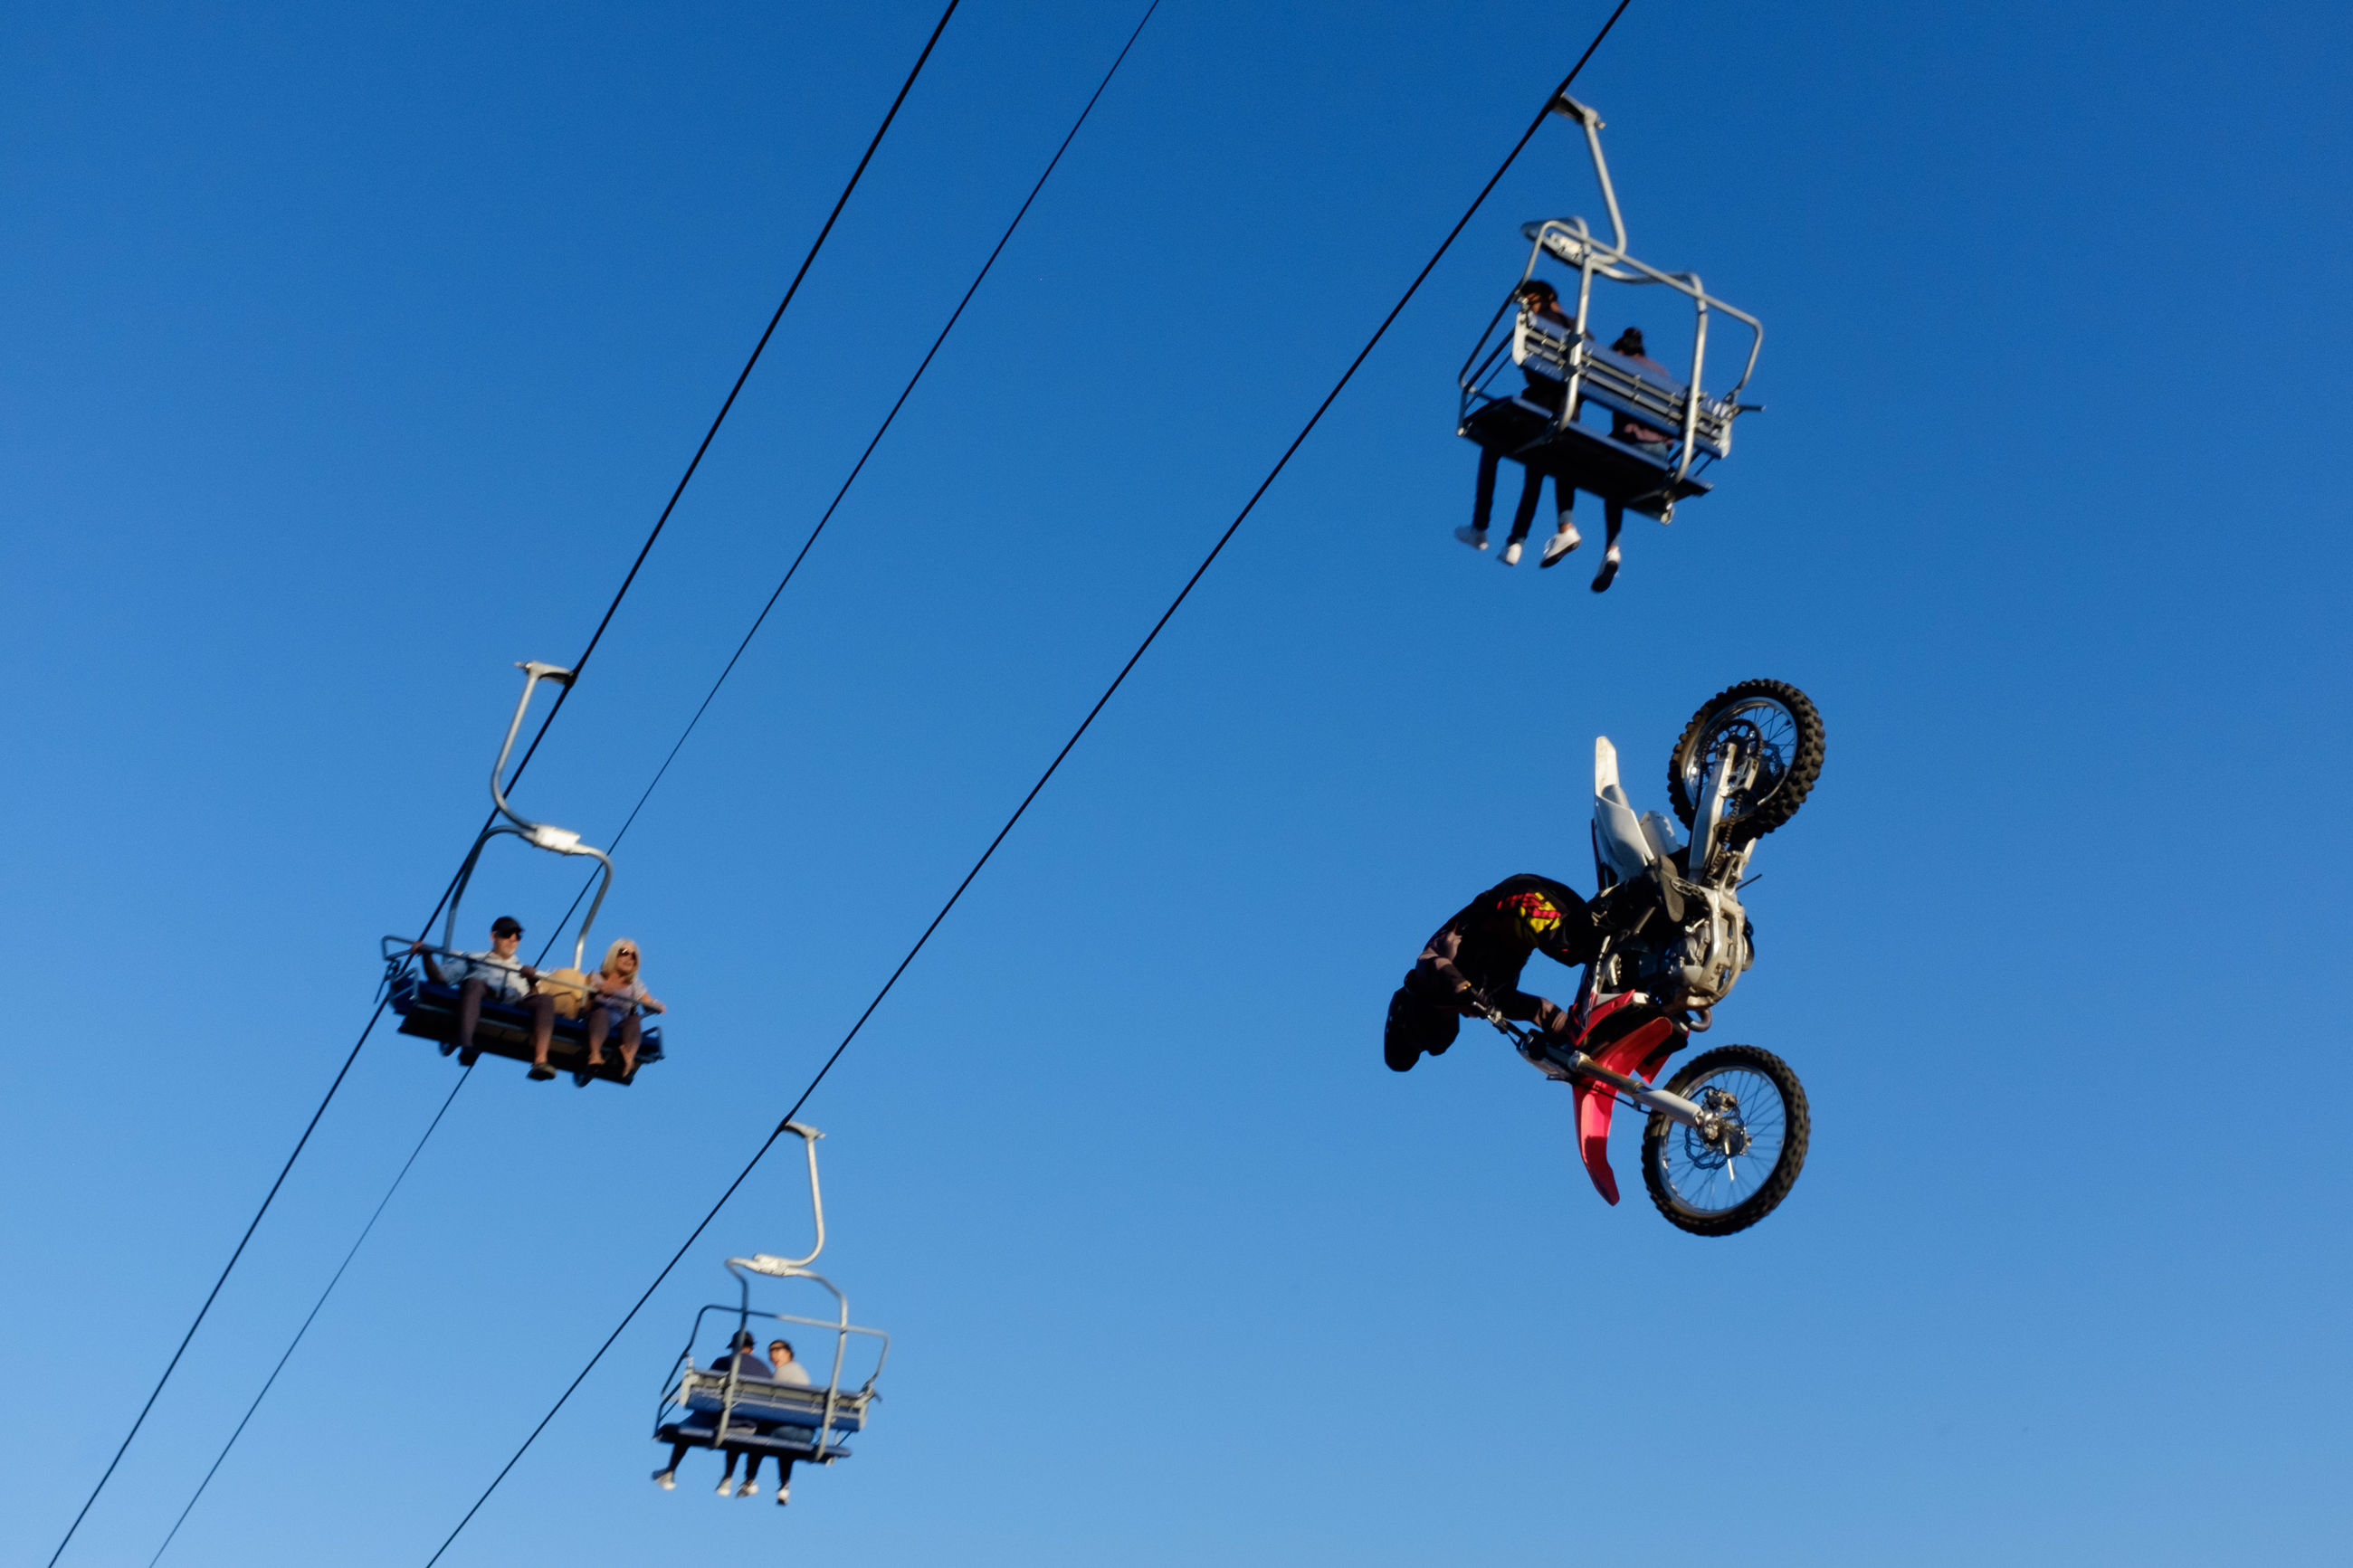 real people, adventure, extreme sports, low angle view, risk, men, leisure activity, danger, clear sky, lifestyles, mid-air, day, blue, transportation, outdoors, two people, stunt, overhead cable car, sky, stunt person, ski lift, people